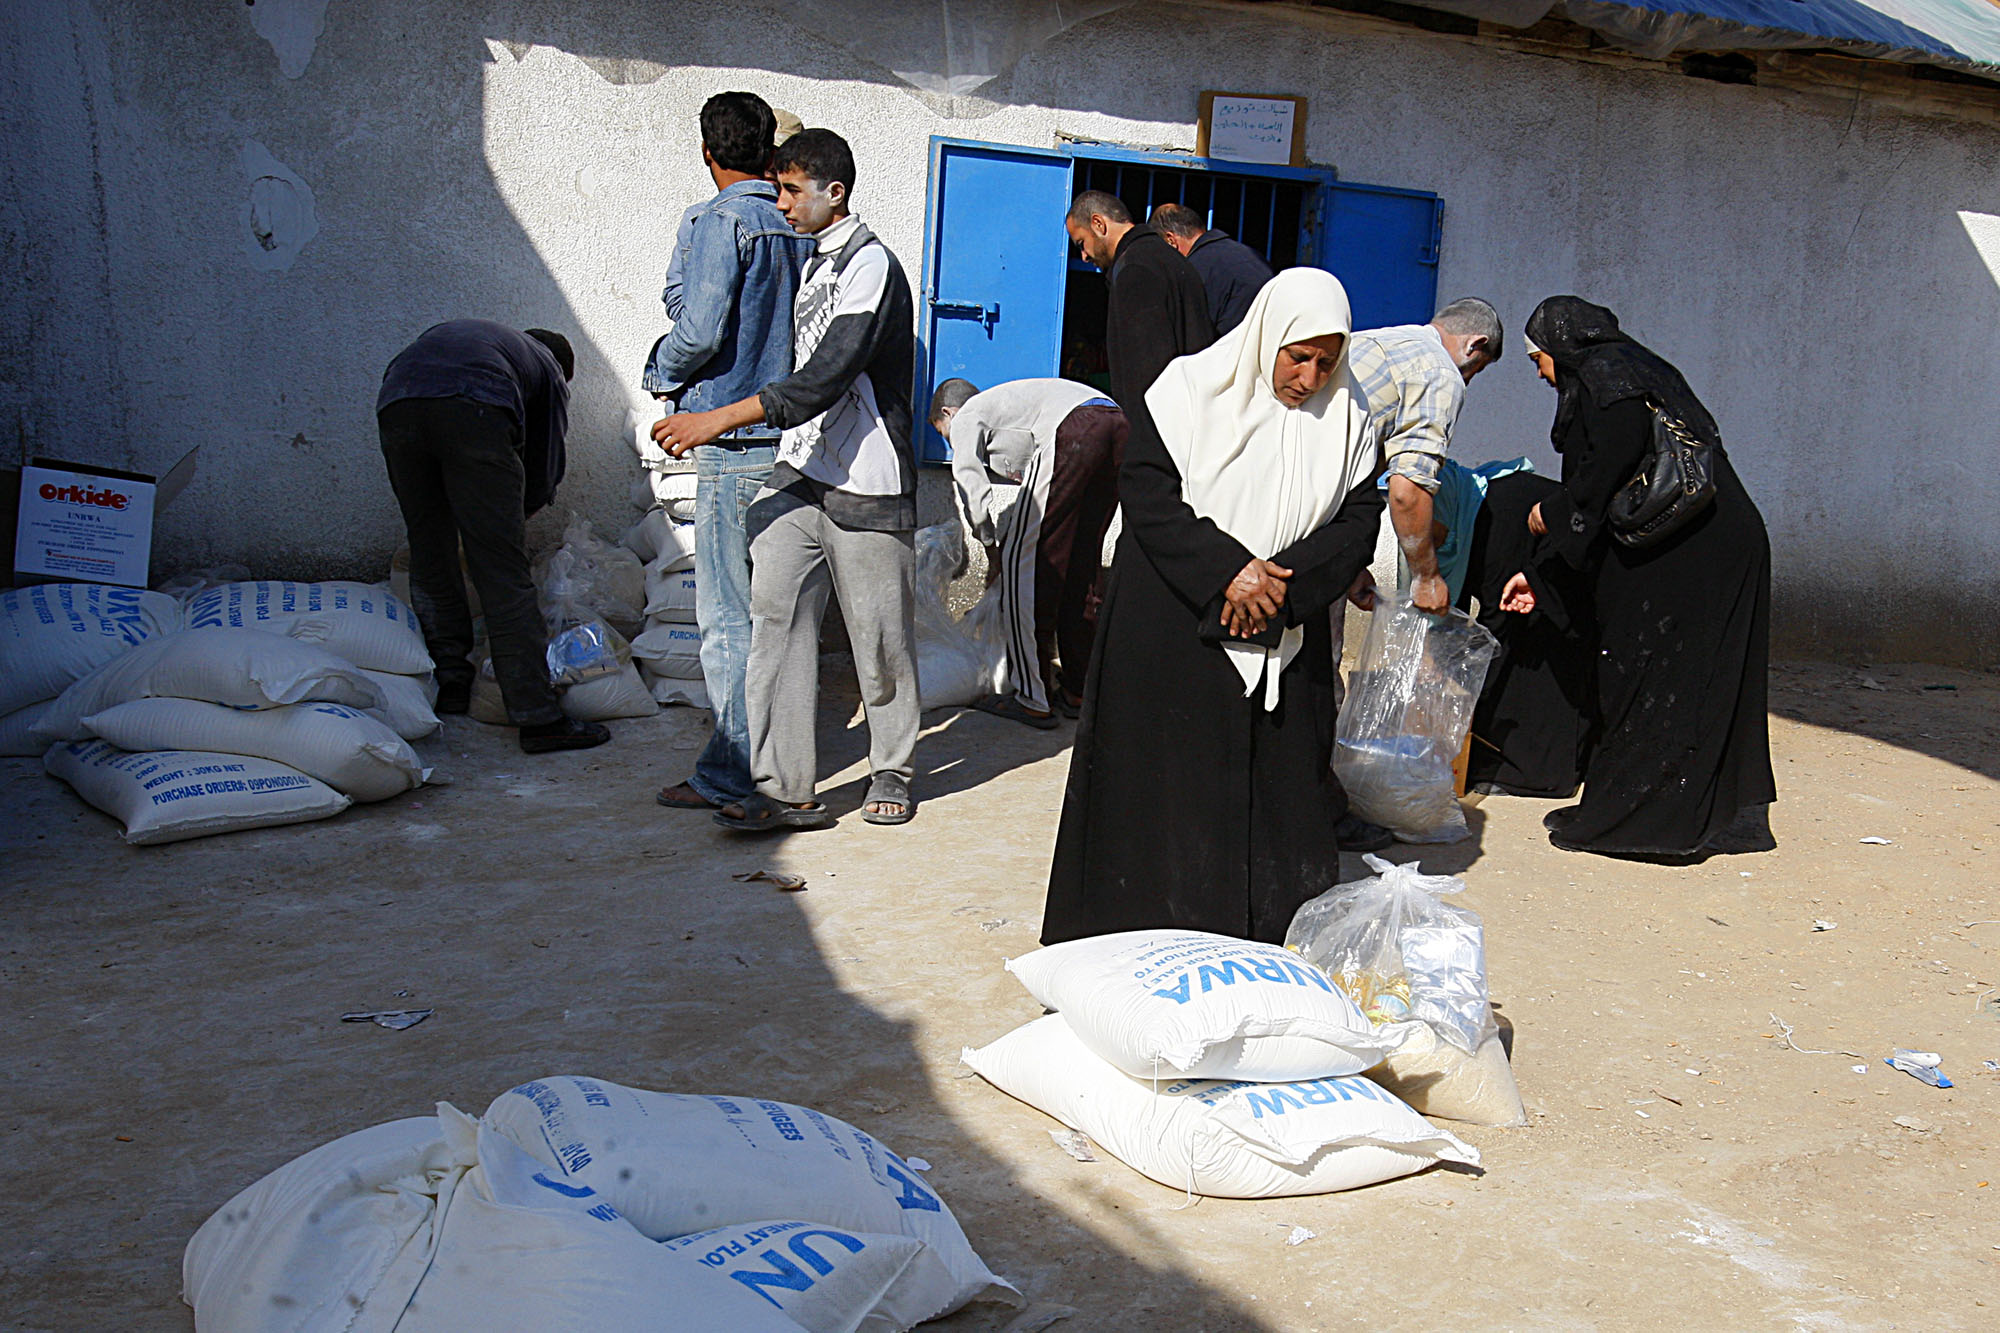 palestinian refugees essay Palestinian suffering few people have suffered more constant misery and daily oppression in the last 50 years than the palestinians the key issue, however, concerns not the amount — although it has obviously been grossly exaggerated — but the source of that suffering.